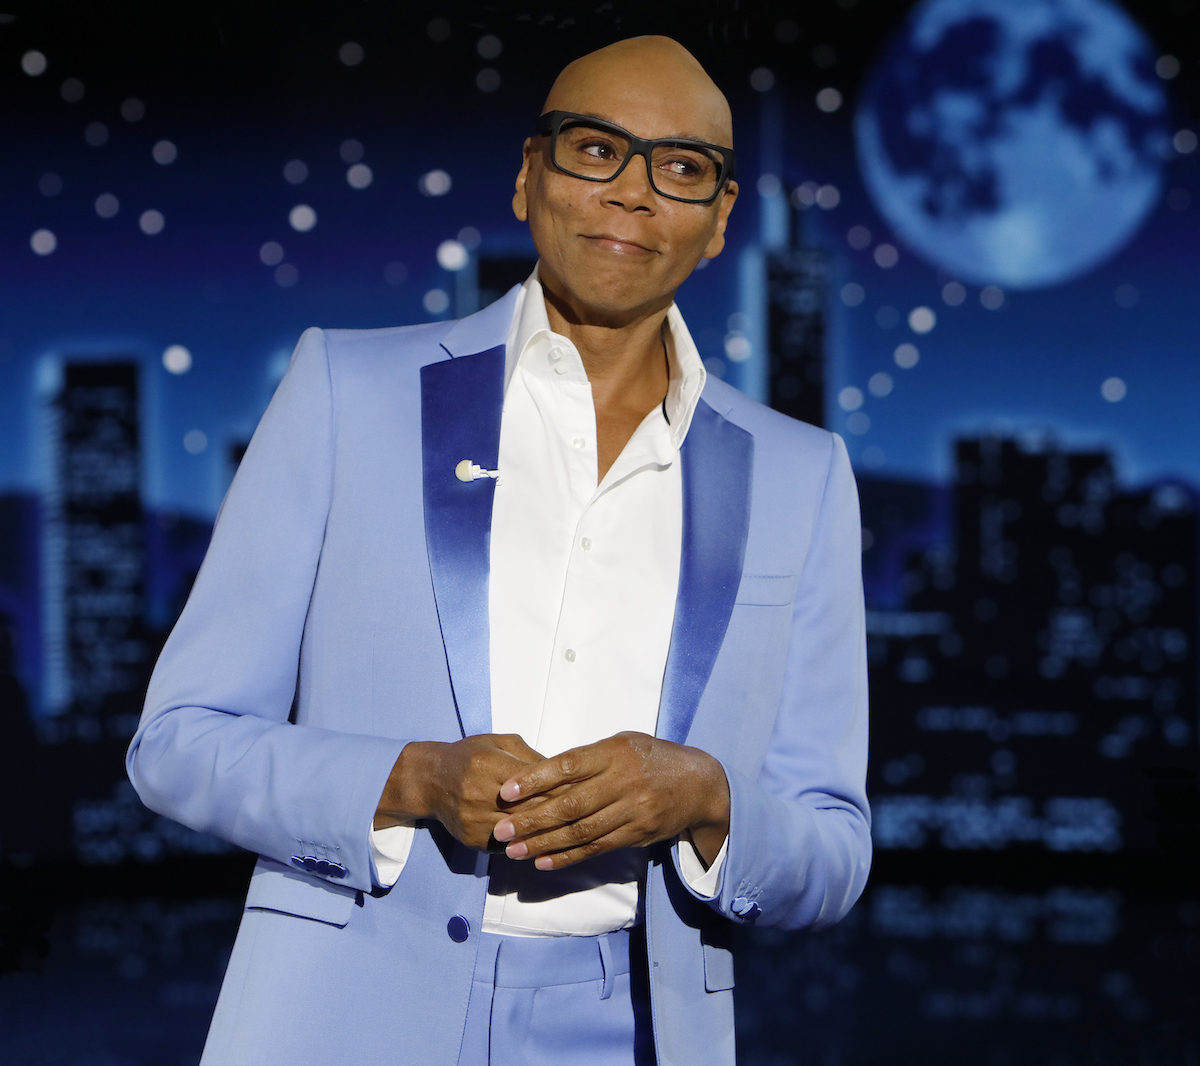 """RuPaul smiling on stage wearing a blue suit at """"Jimmy Kimmel Live!"""""""